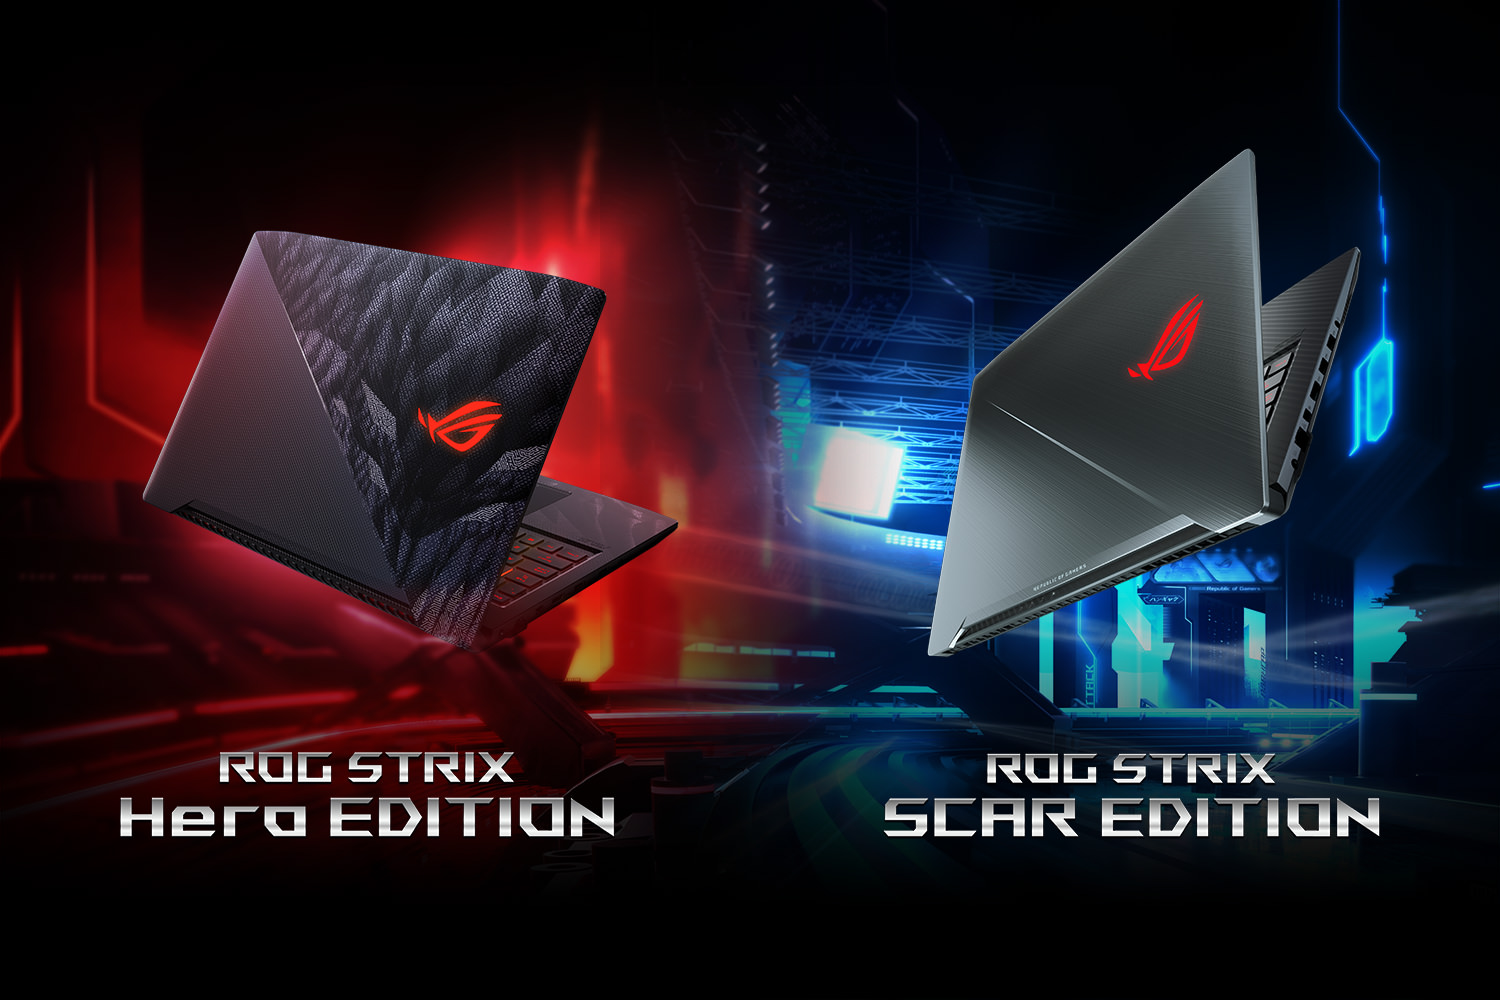 ASUS ROG Strix Hero & SCAR Edition